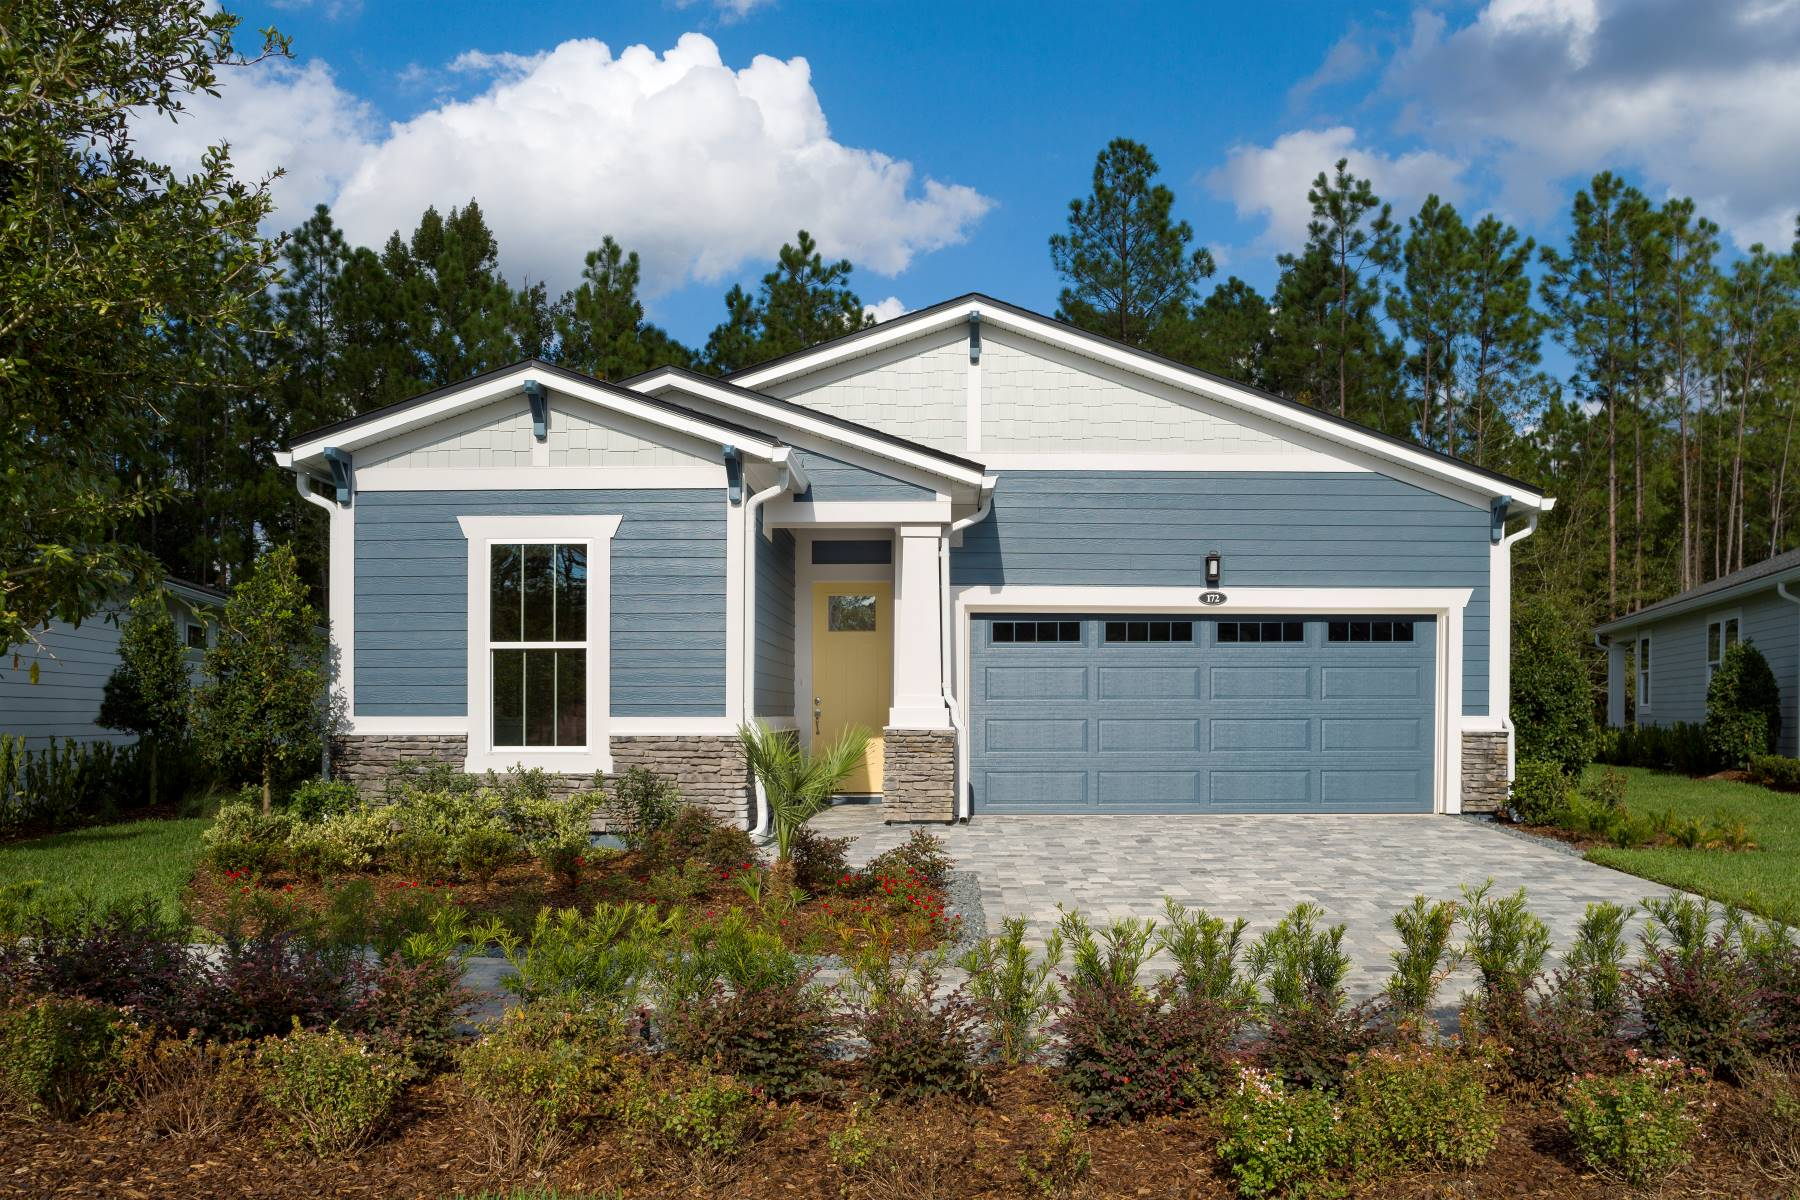 Court Plan Elevation Front at RiverTown - WaterSong in St. Johns Florida by Mattamy Homes